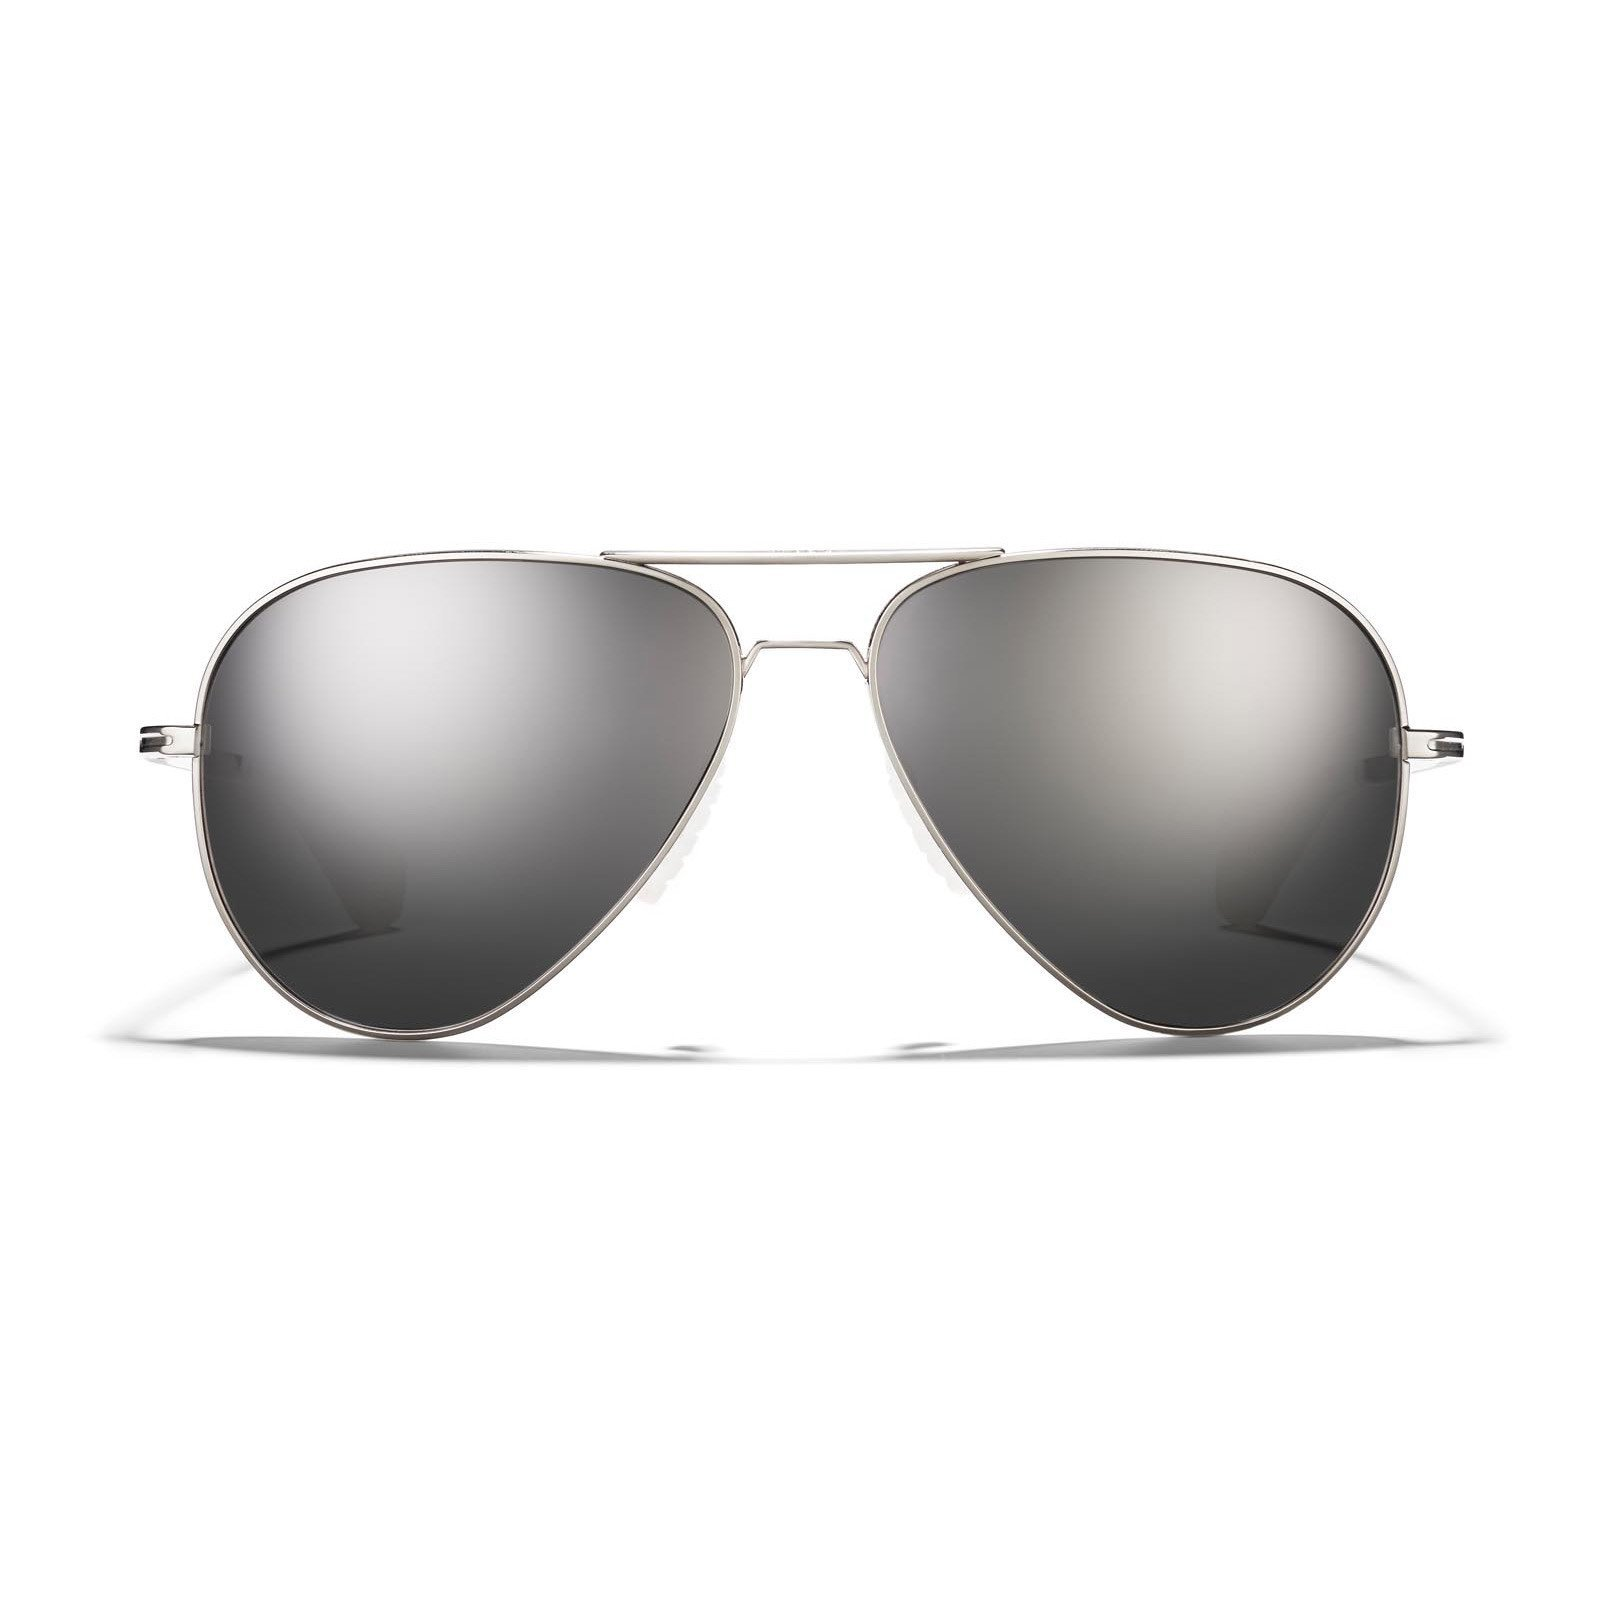 c06b19059cf01 Aviator Sunglasses - Sports Sunglasses - Lightweight Sunglass